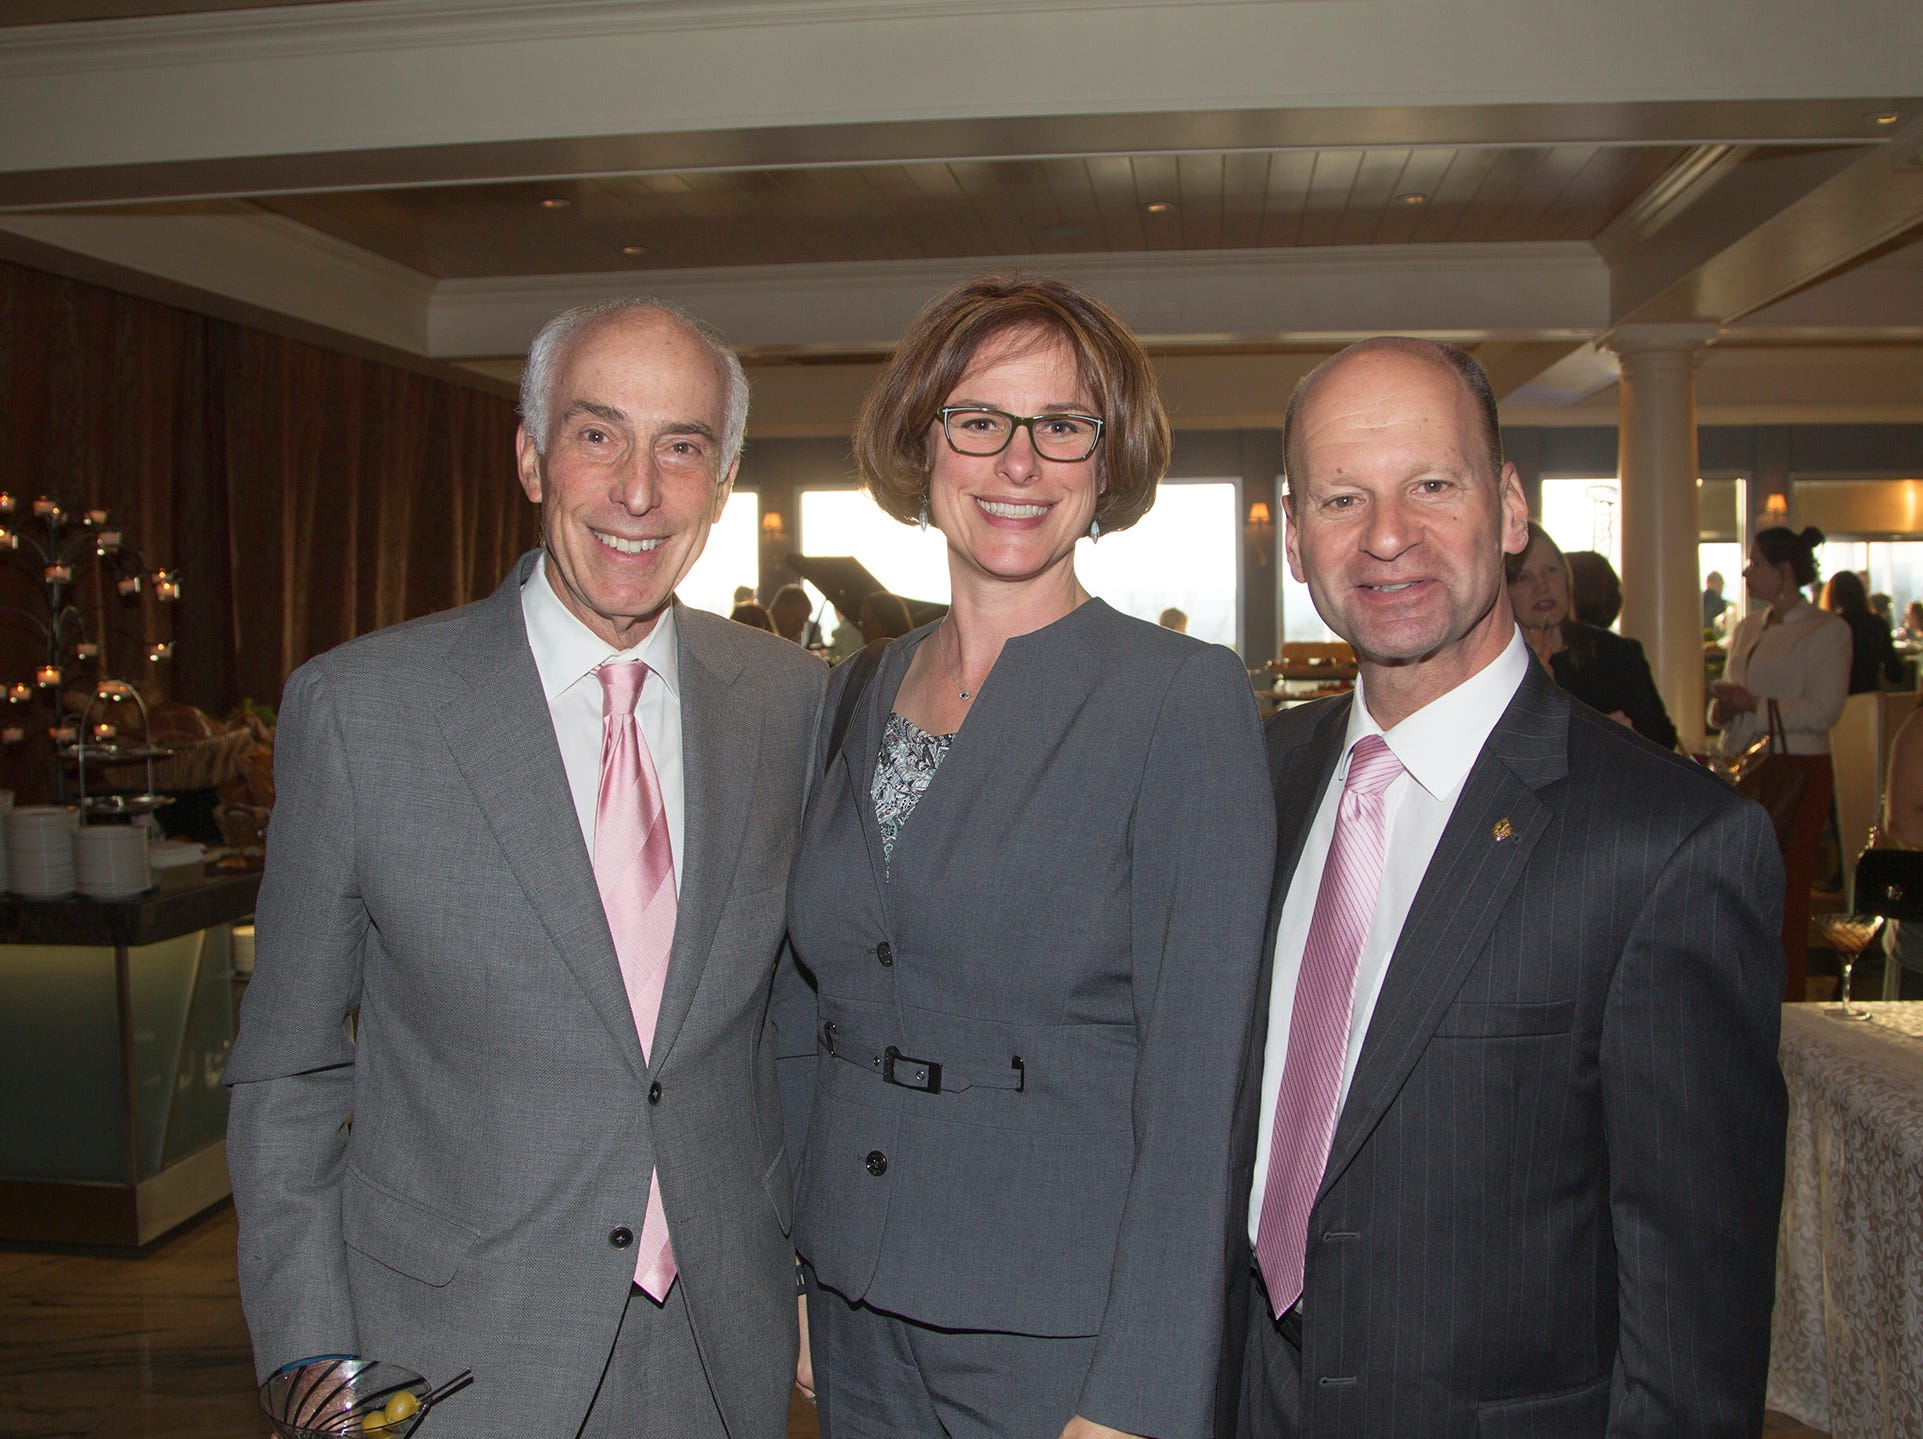 Larry Fechner, Alisa Vual, Rick Gorab. Girl Scouts of Northern New Jersey held its Women of Achievement 2019 at Westmount Country Club in Woodland Park. 04/04/2019